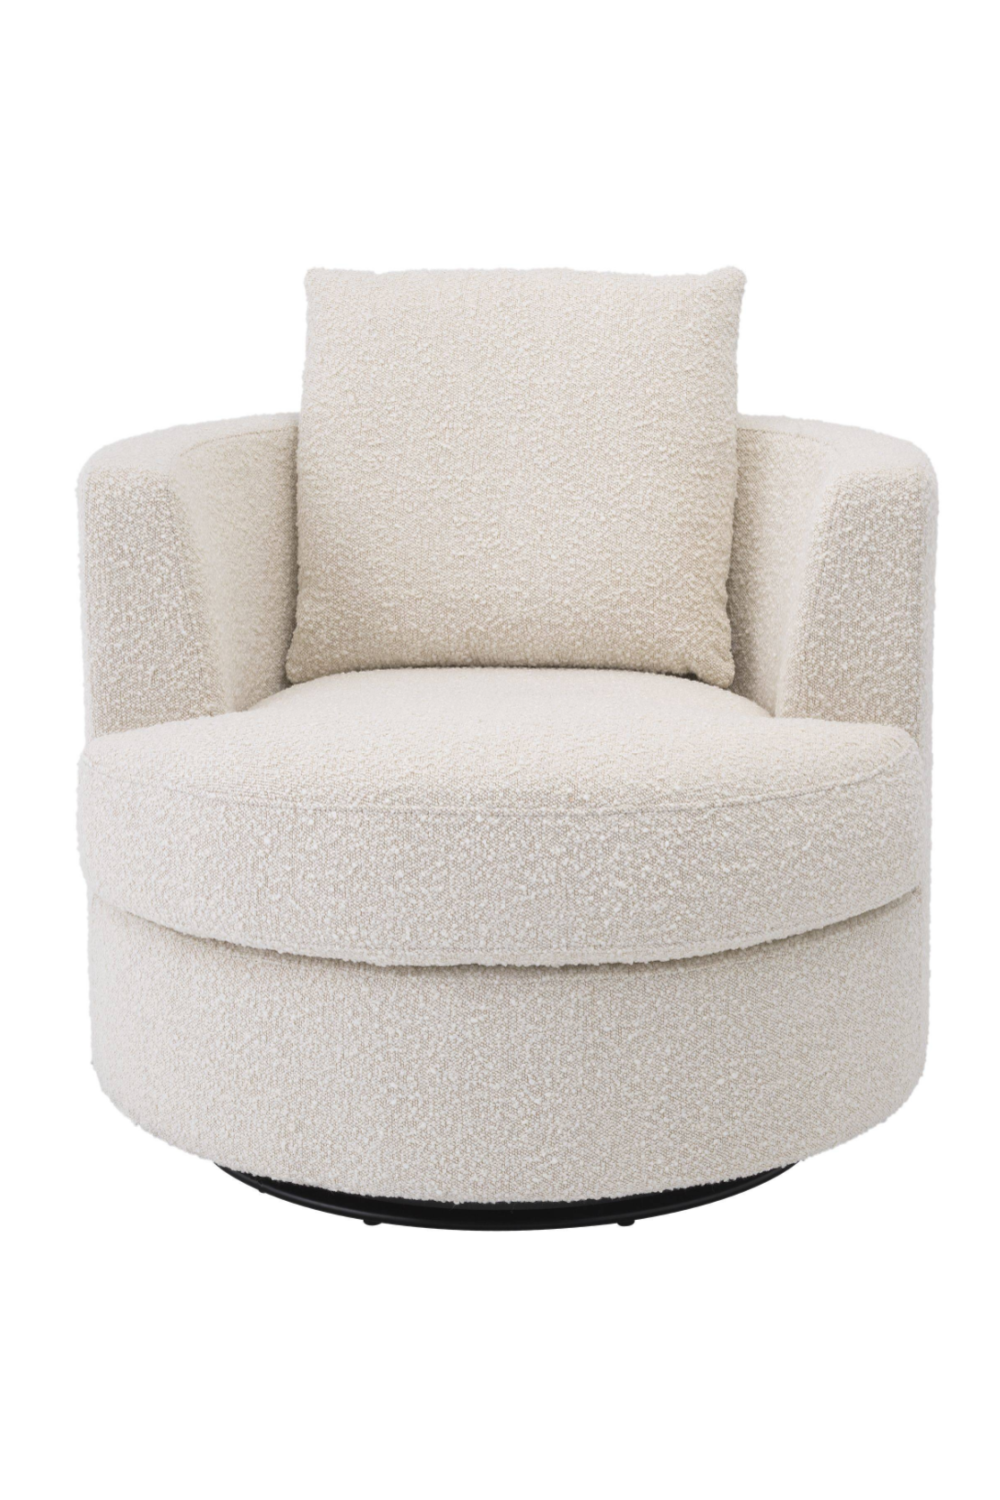 Bouclé Cream Swivel Chair | Eichholtz Felix